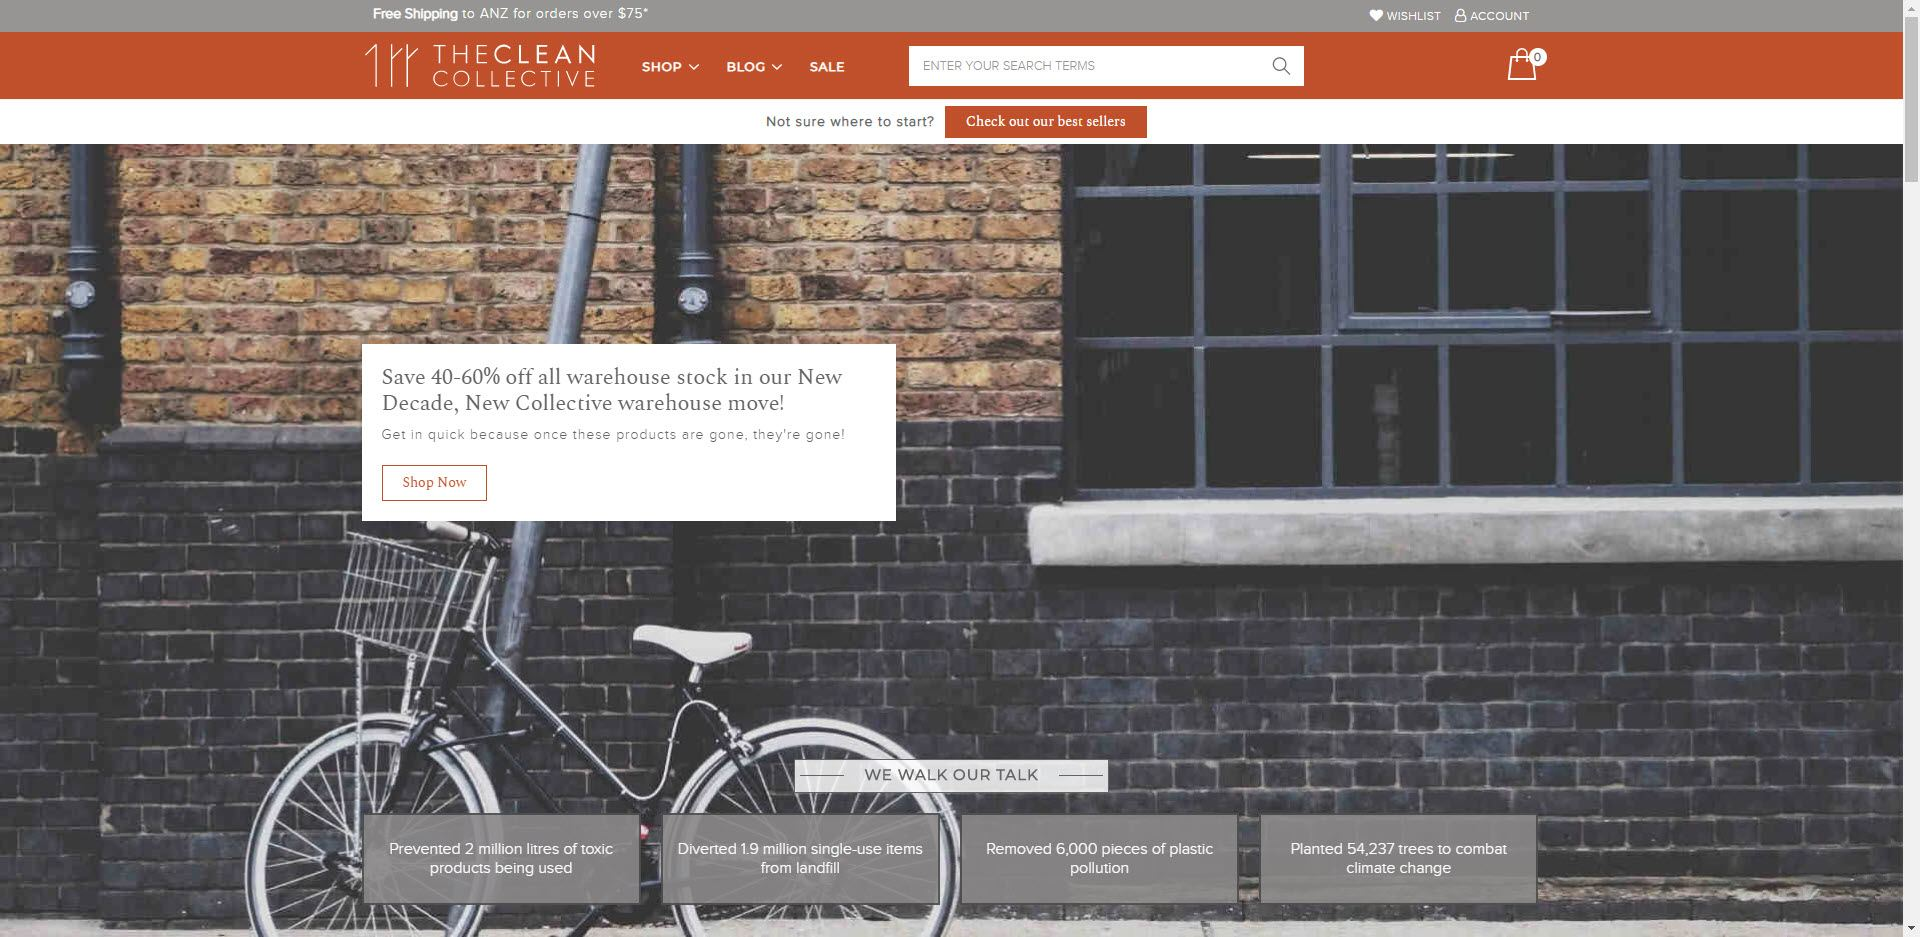 eco friendly affiliate programs - The Clean Collective Home